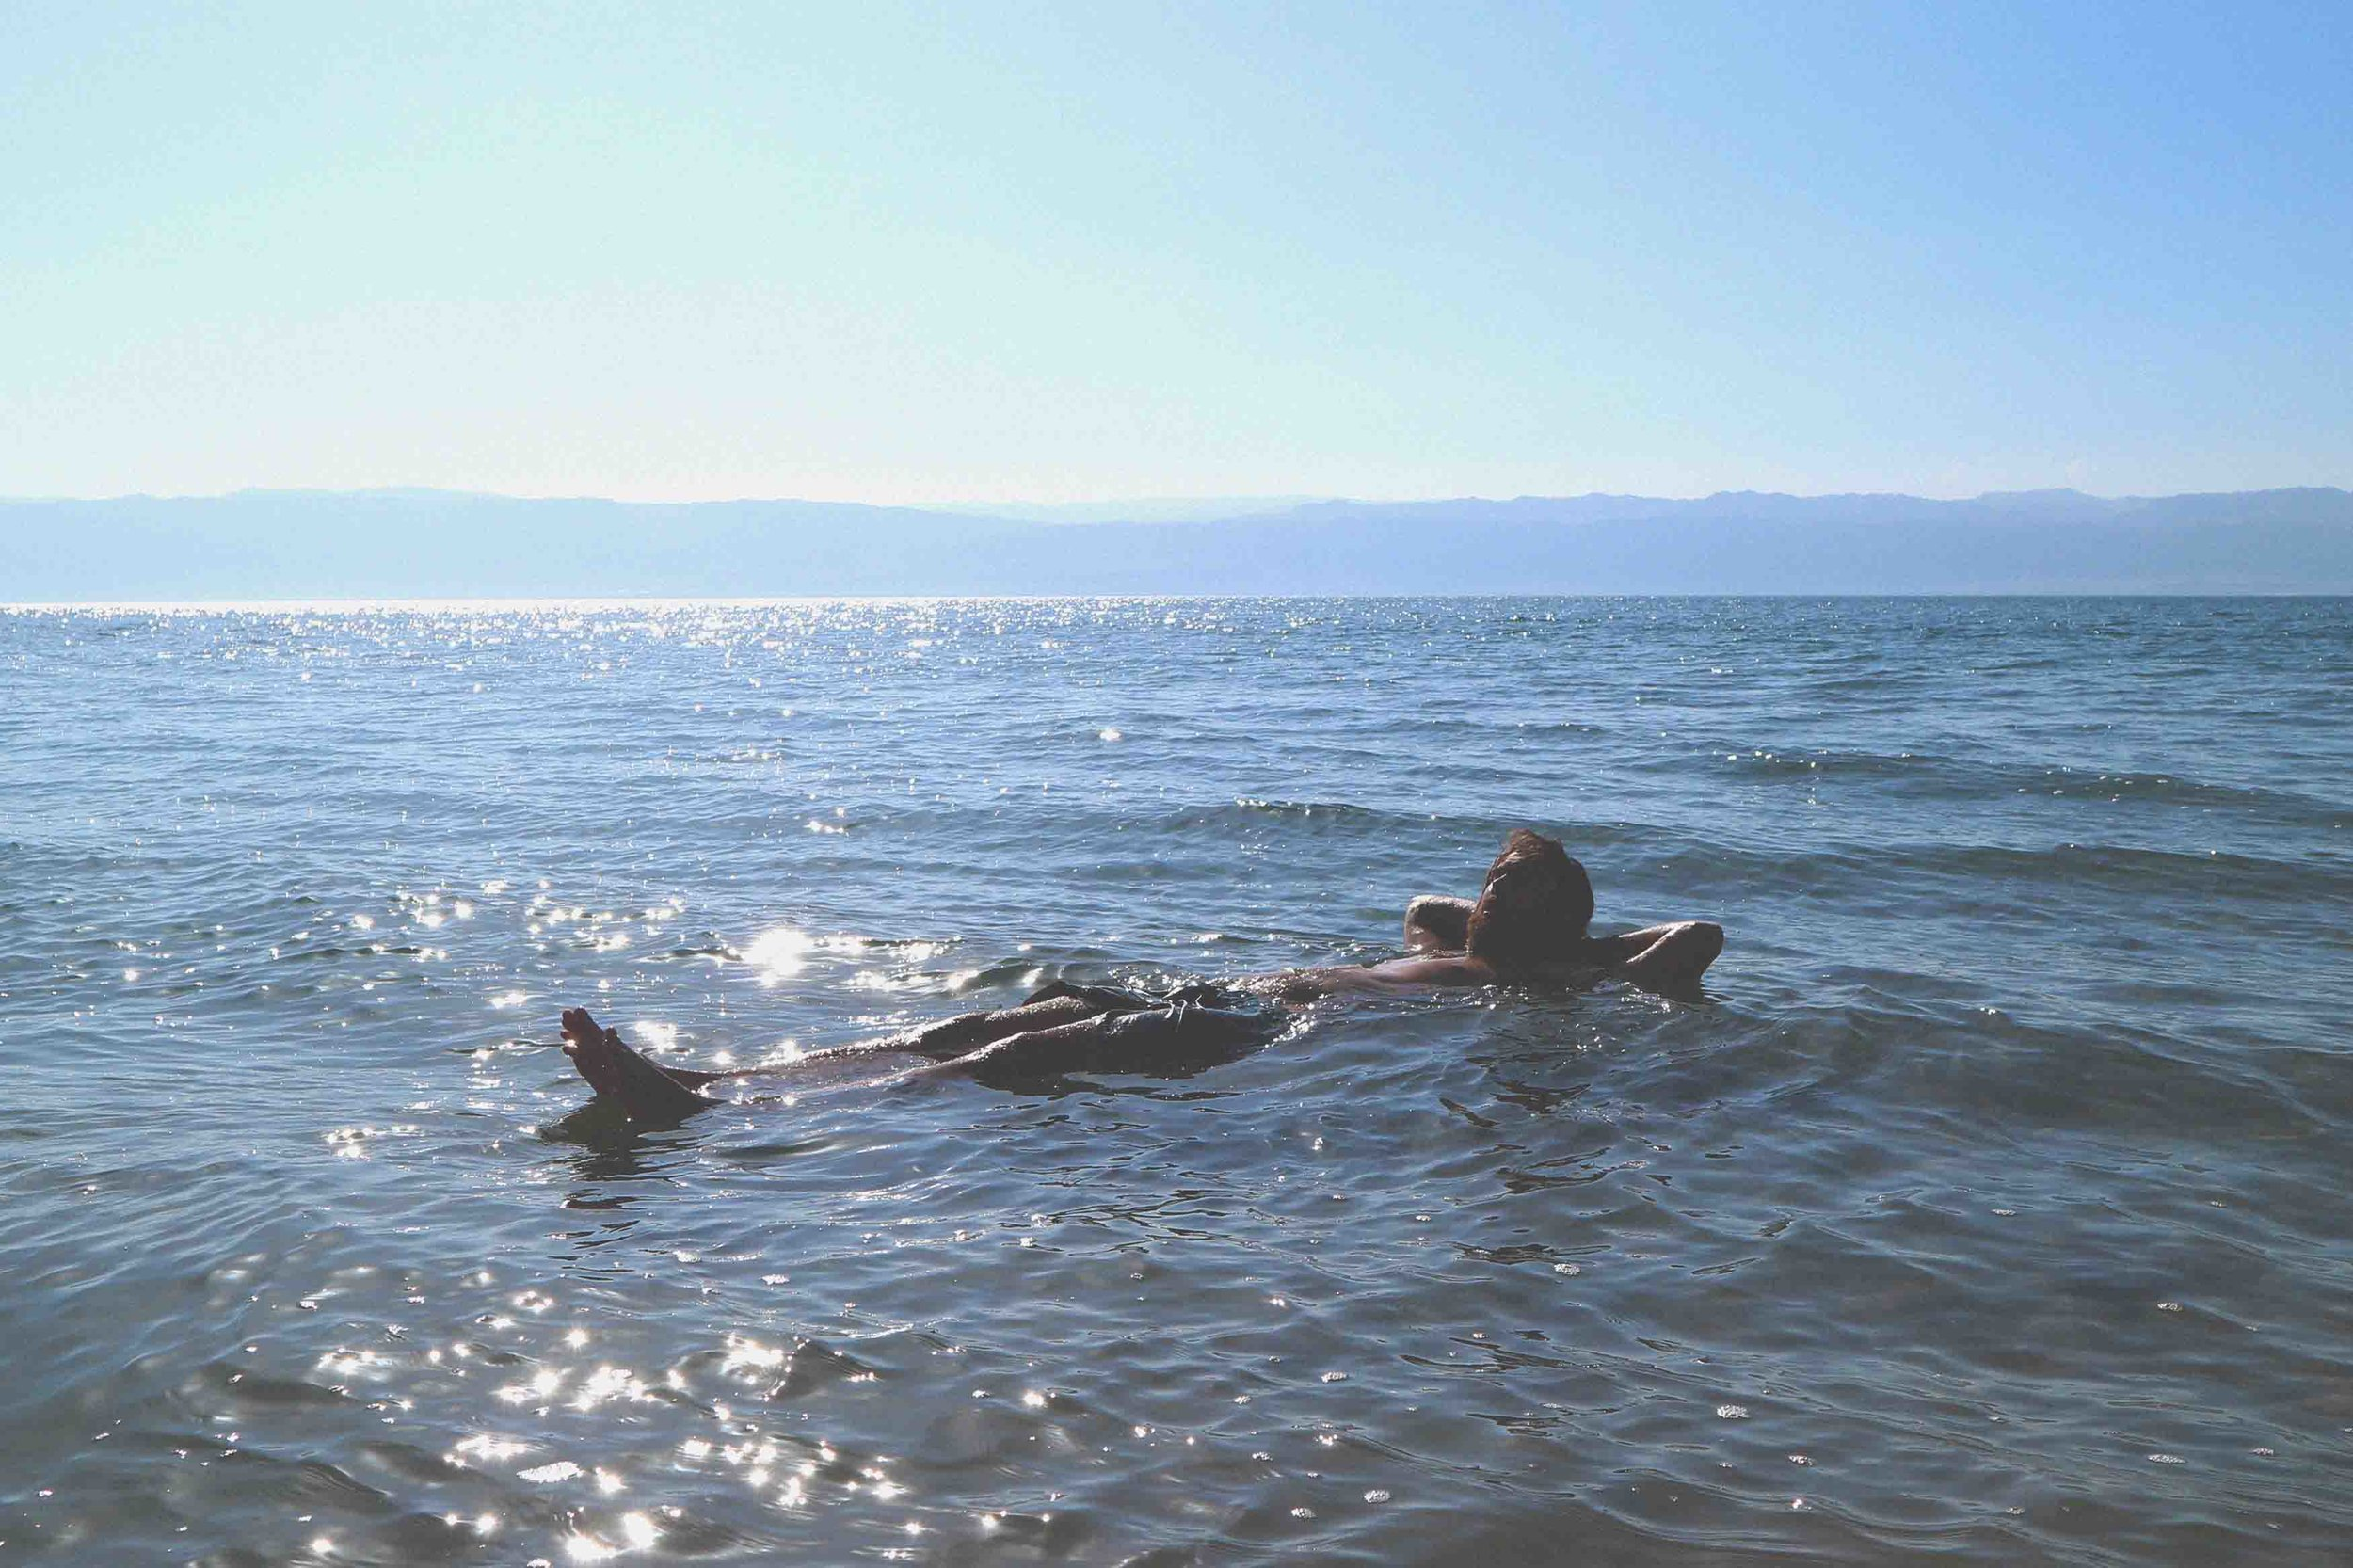 Bathing in the Dead Sea